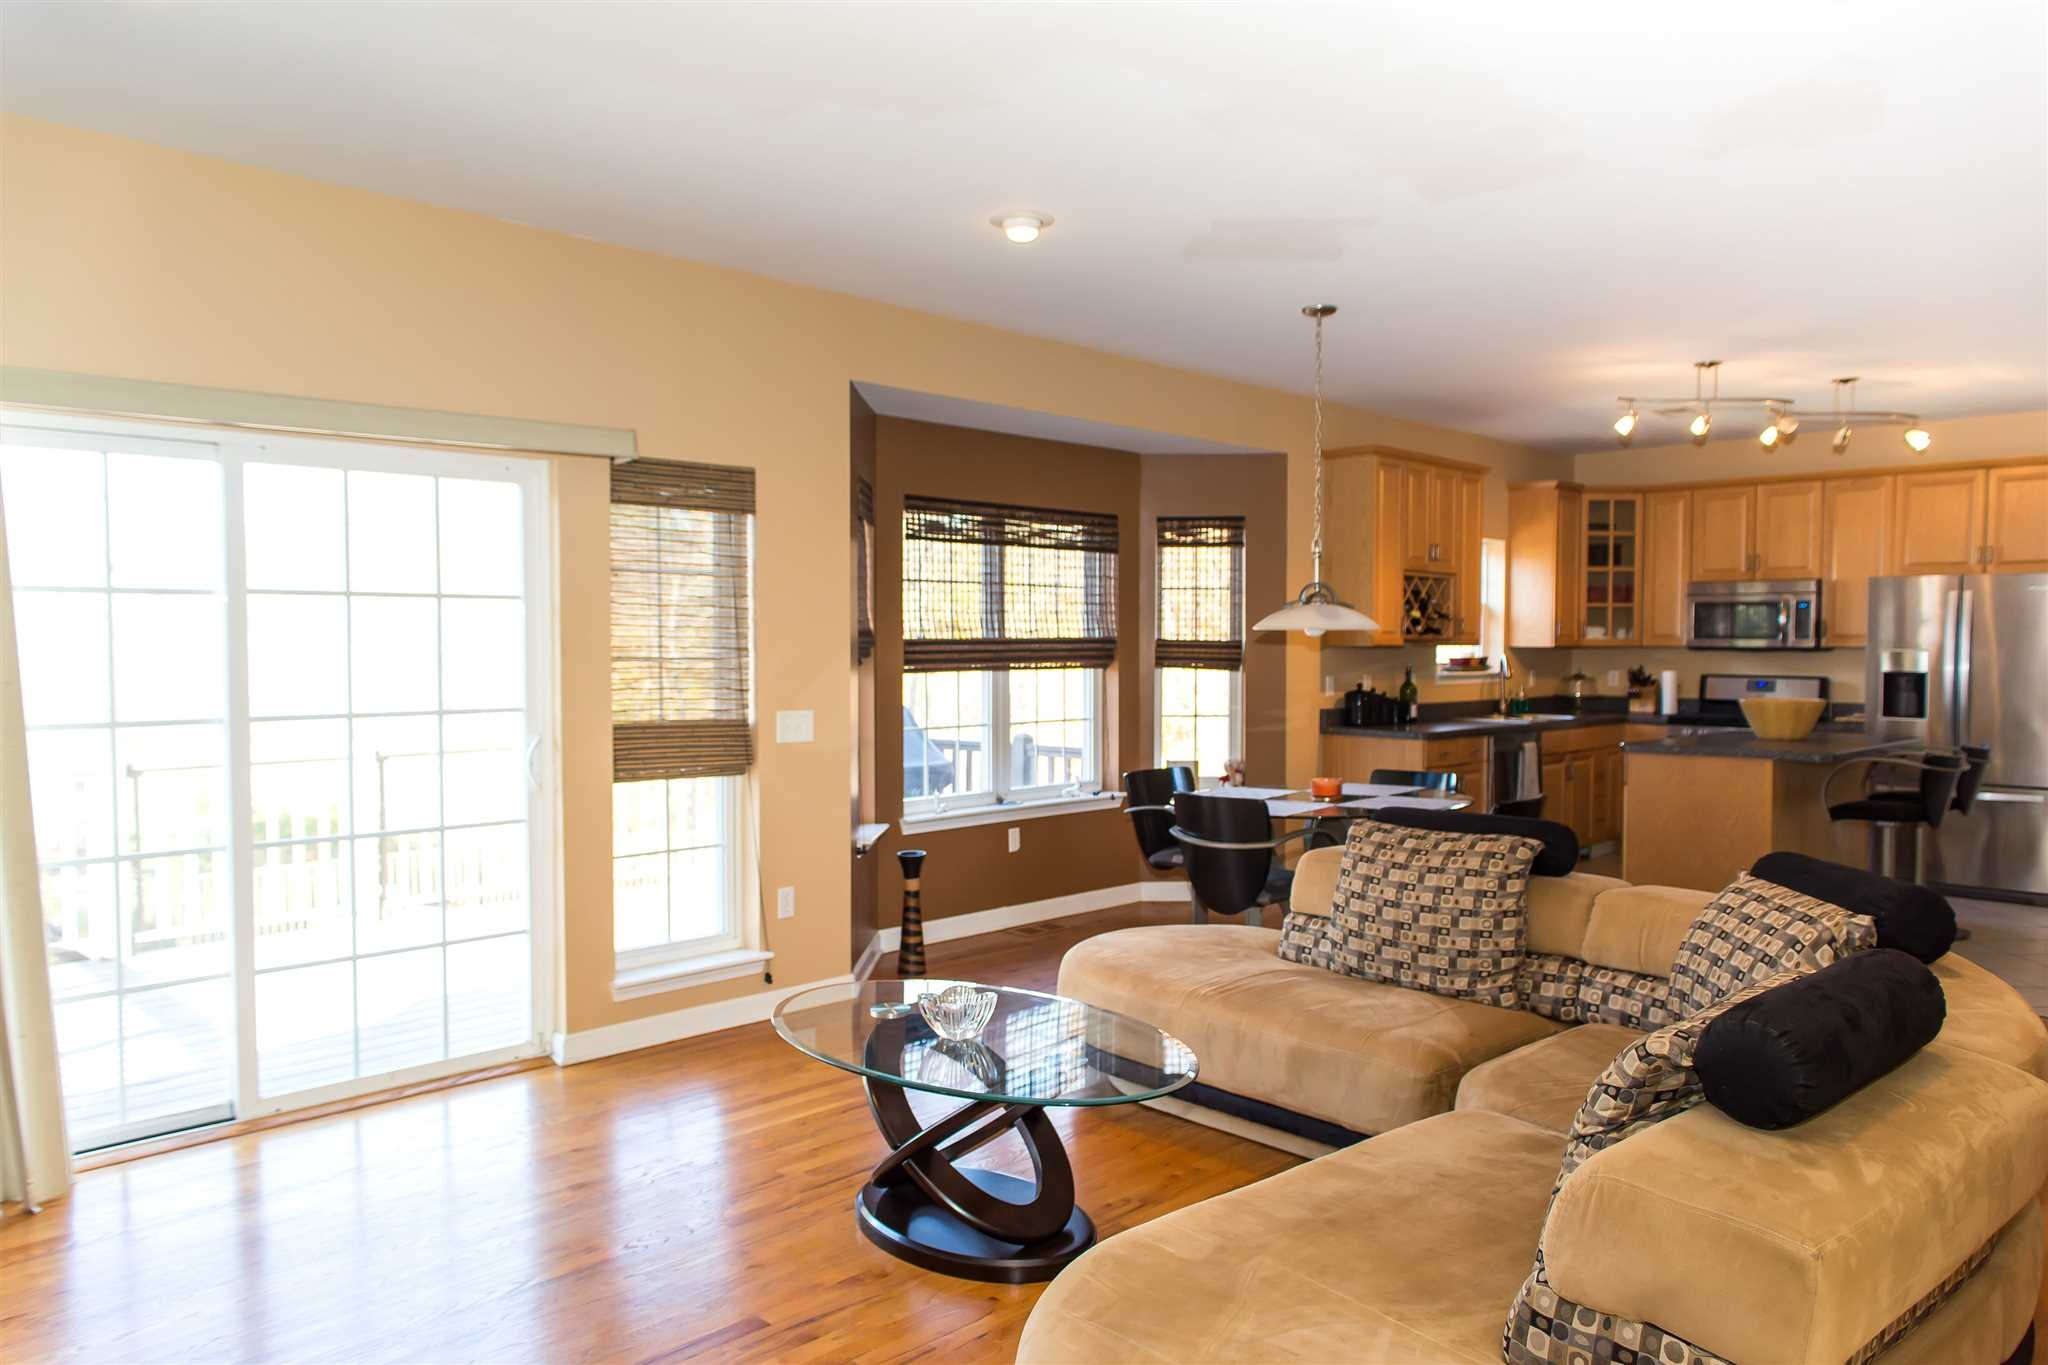 Additional photo for property listing at 21 BARBERRY 21 BARBERRY Fishkill, New York 12590 United States